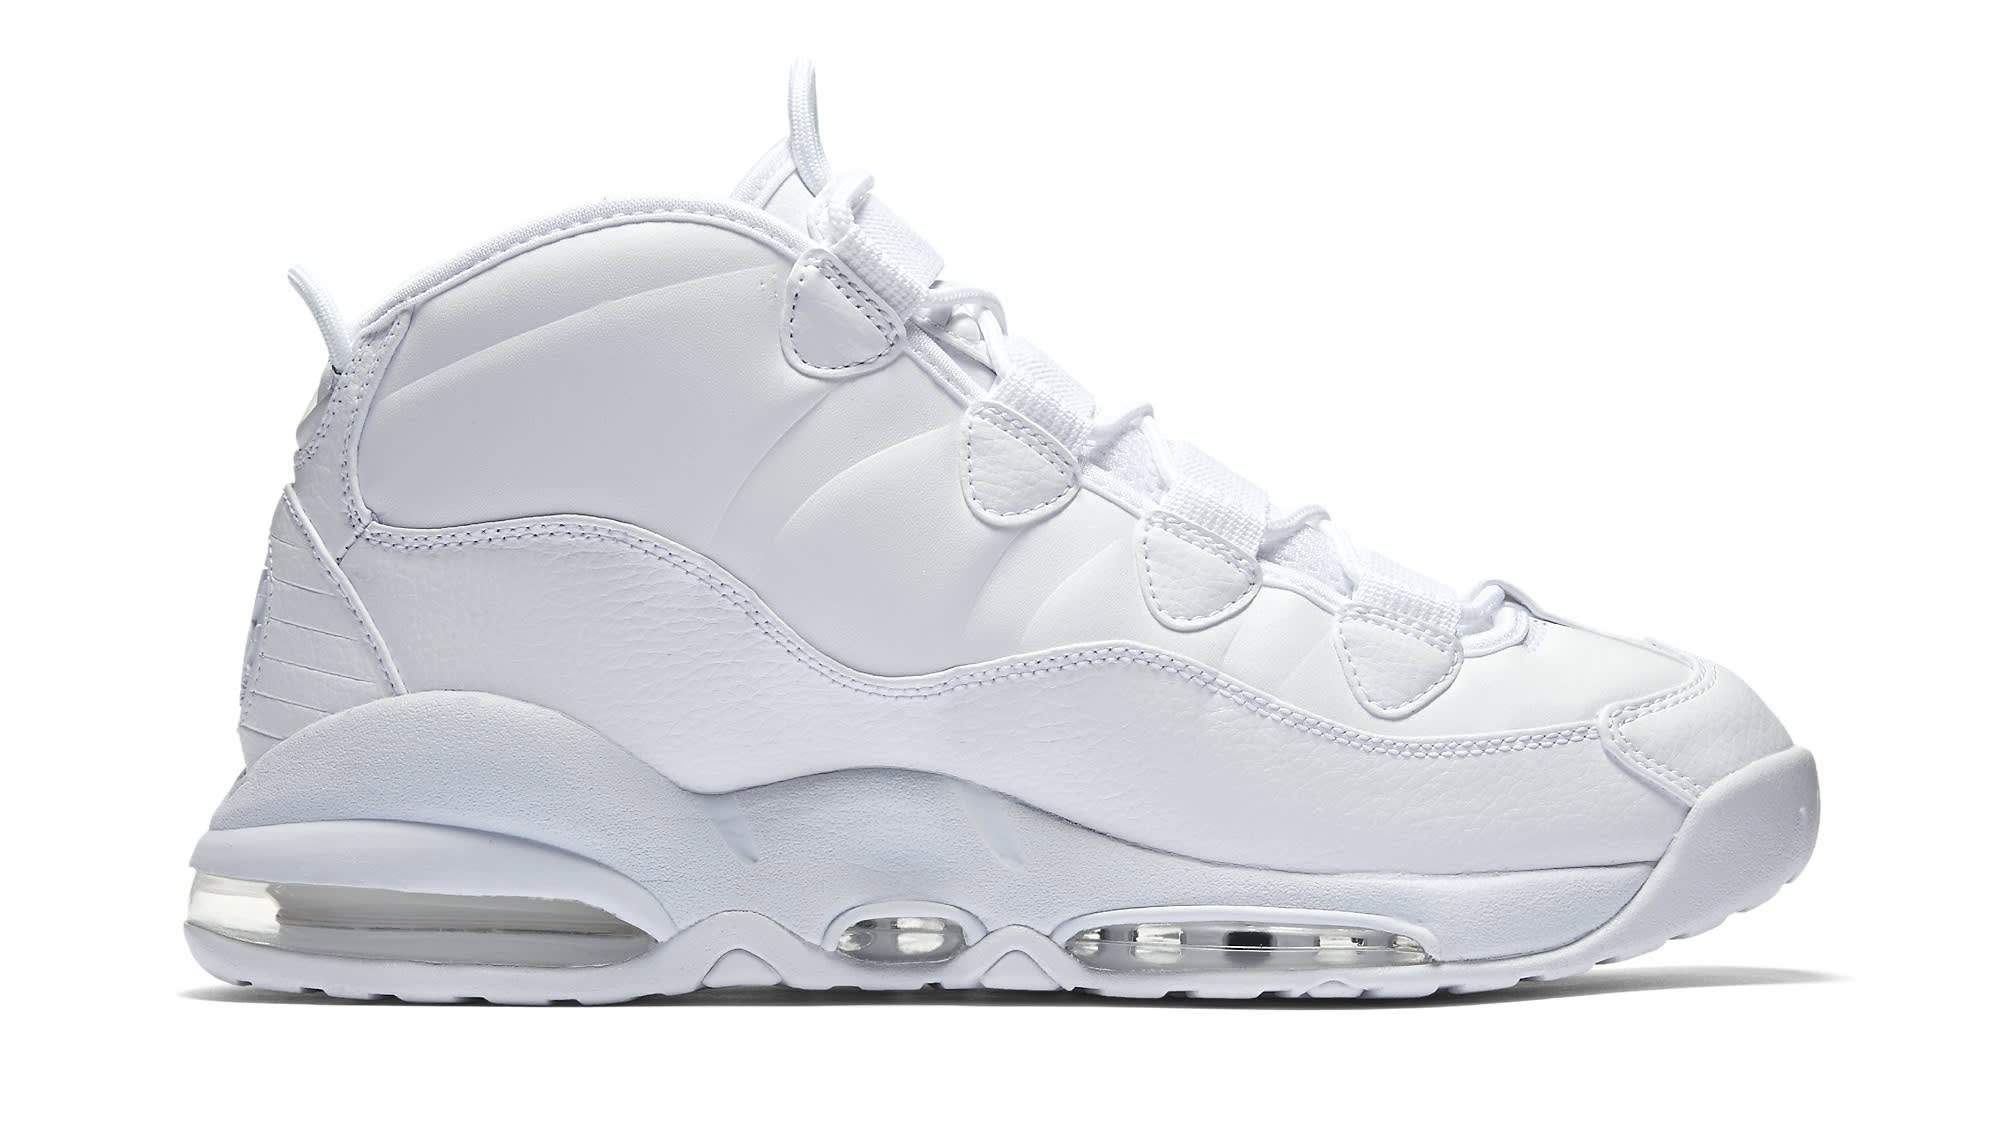 Triple White Nike Air Max Uptempo 922935-100 Medial